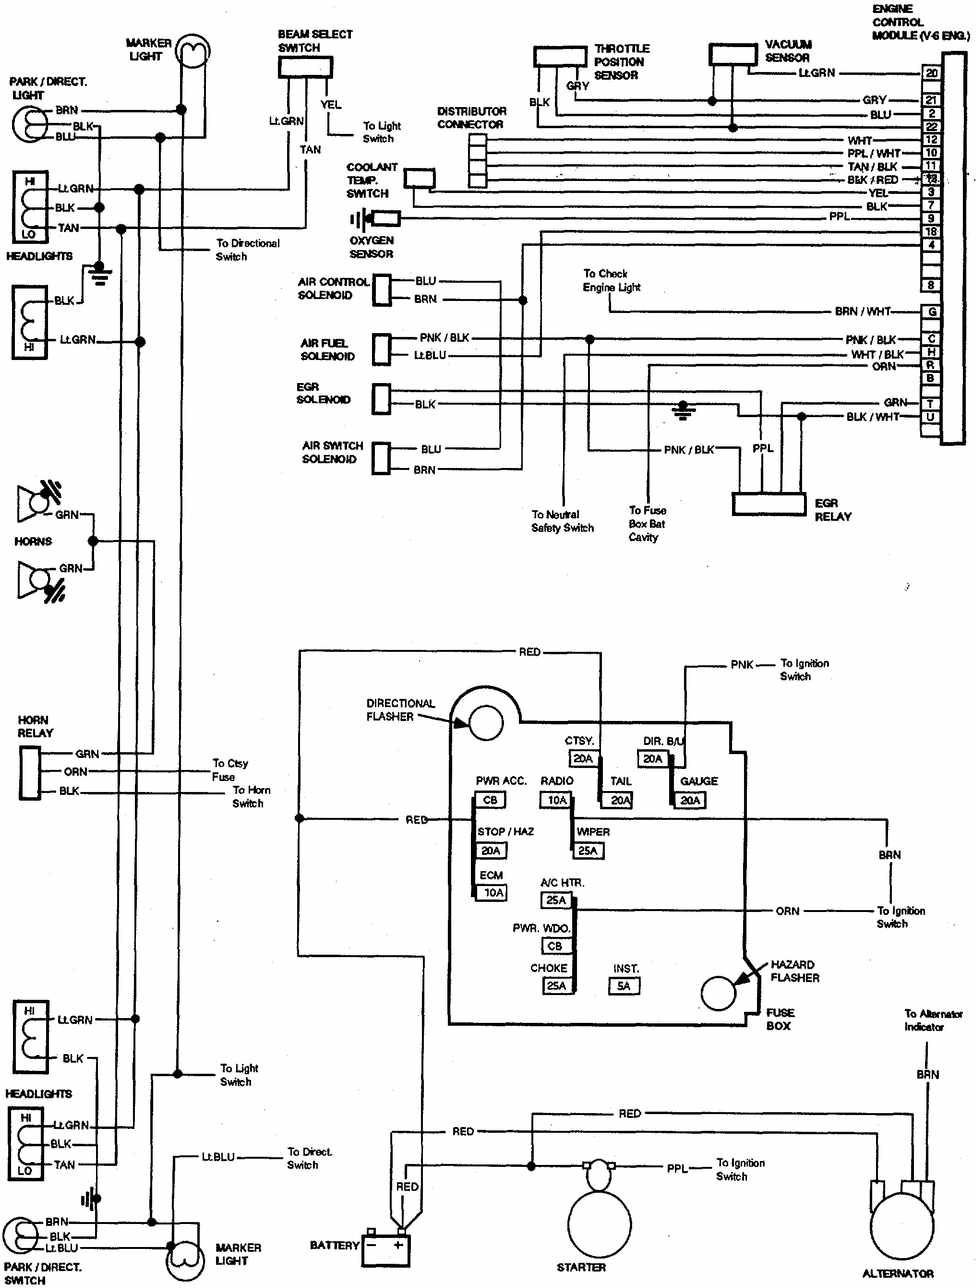 81 Corvette Wiper Motor Wiring | schematic and wiring diagram